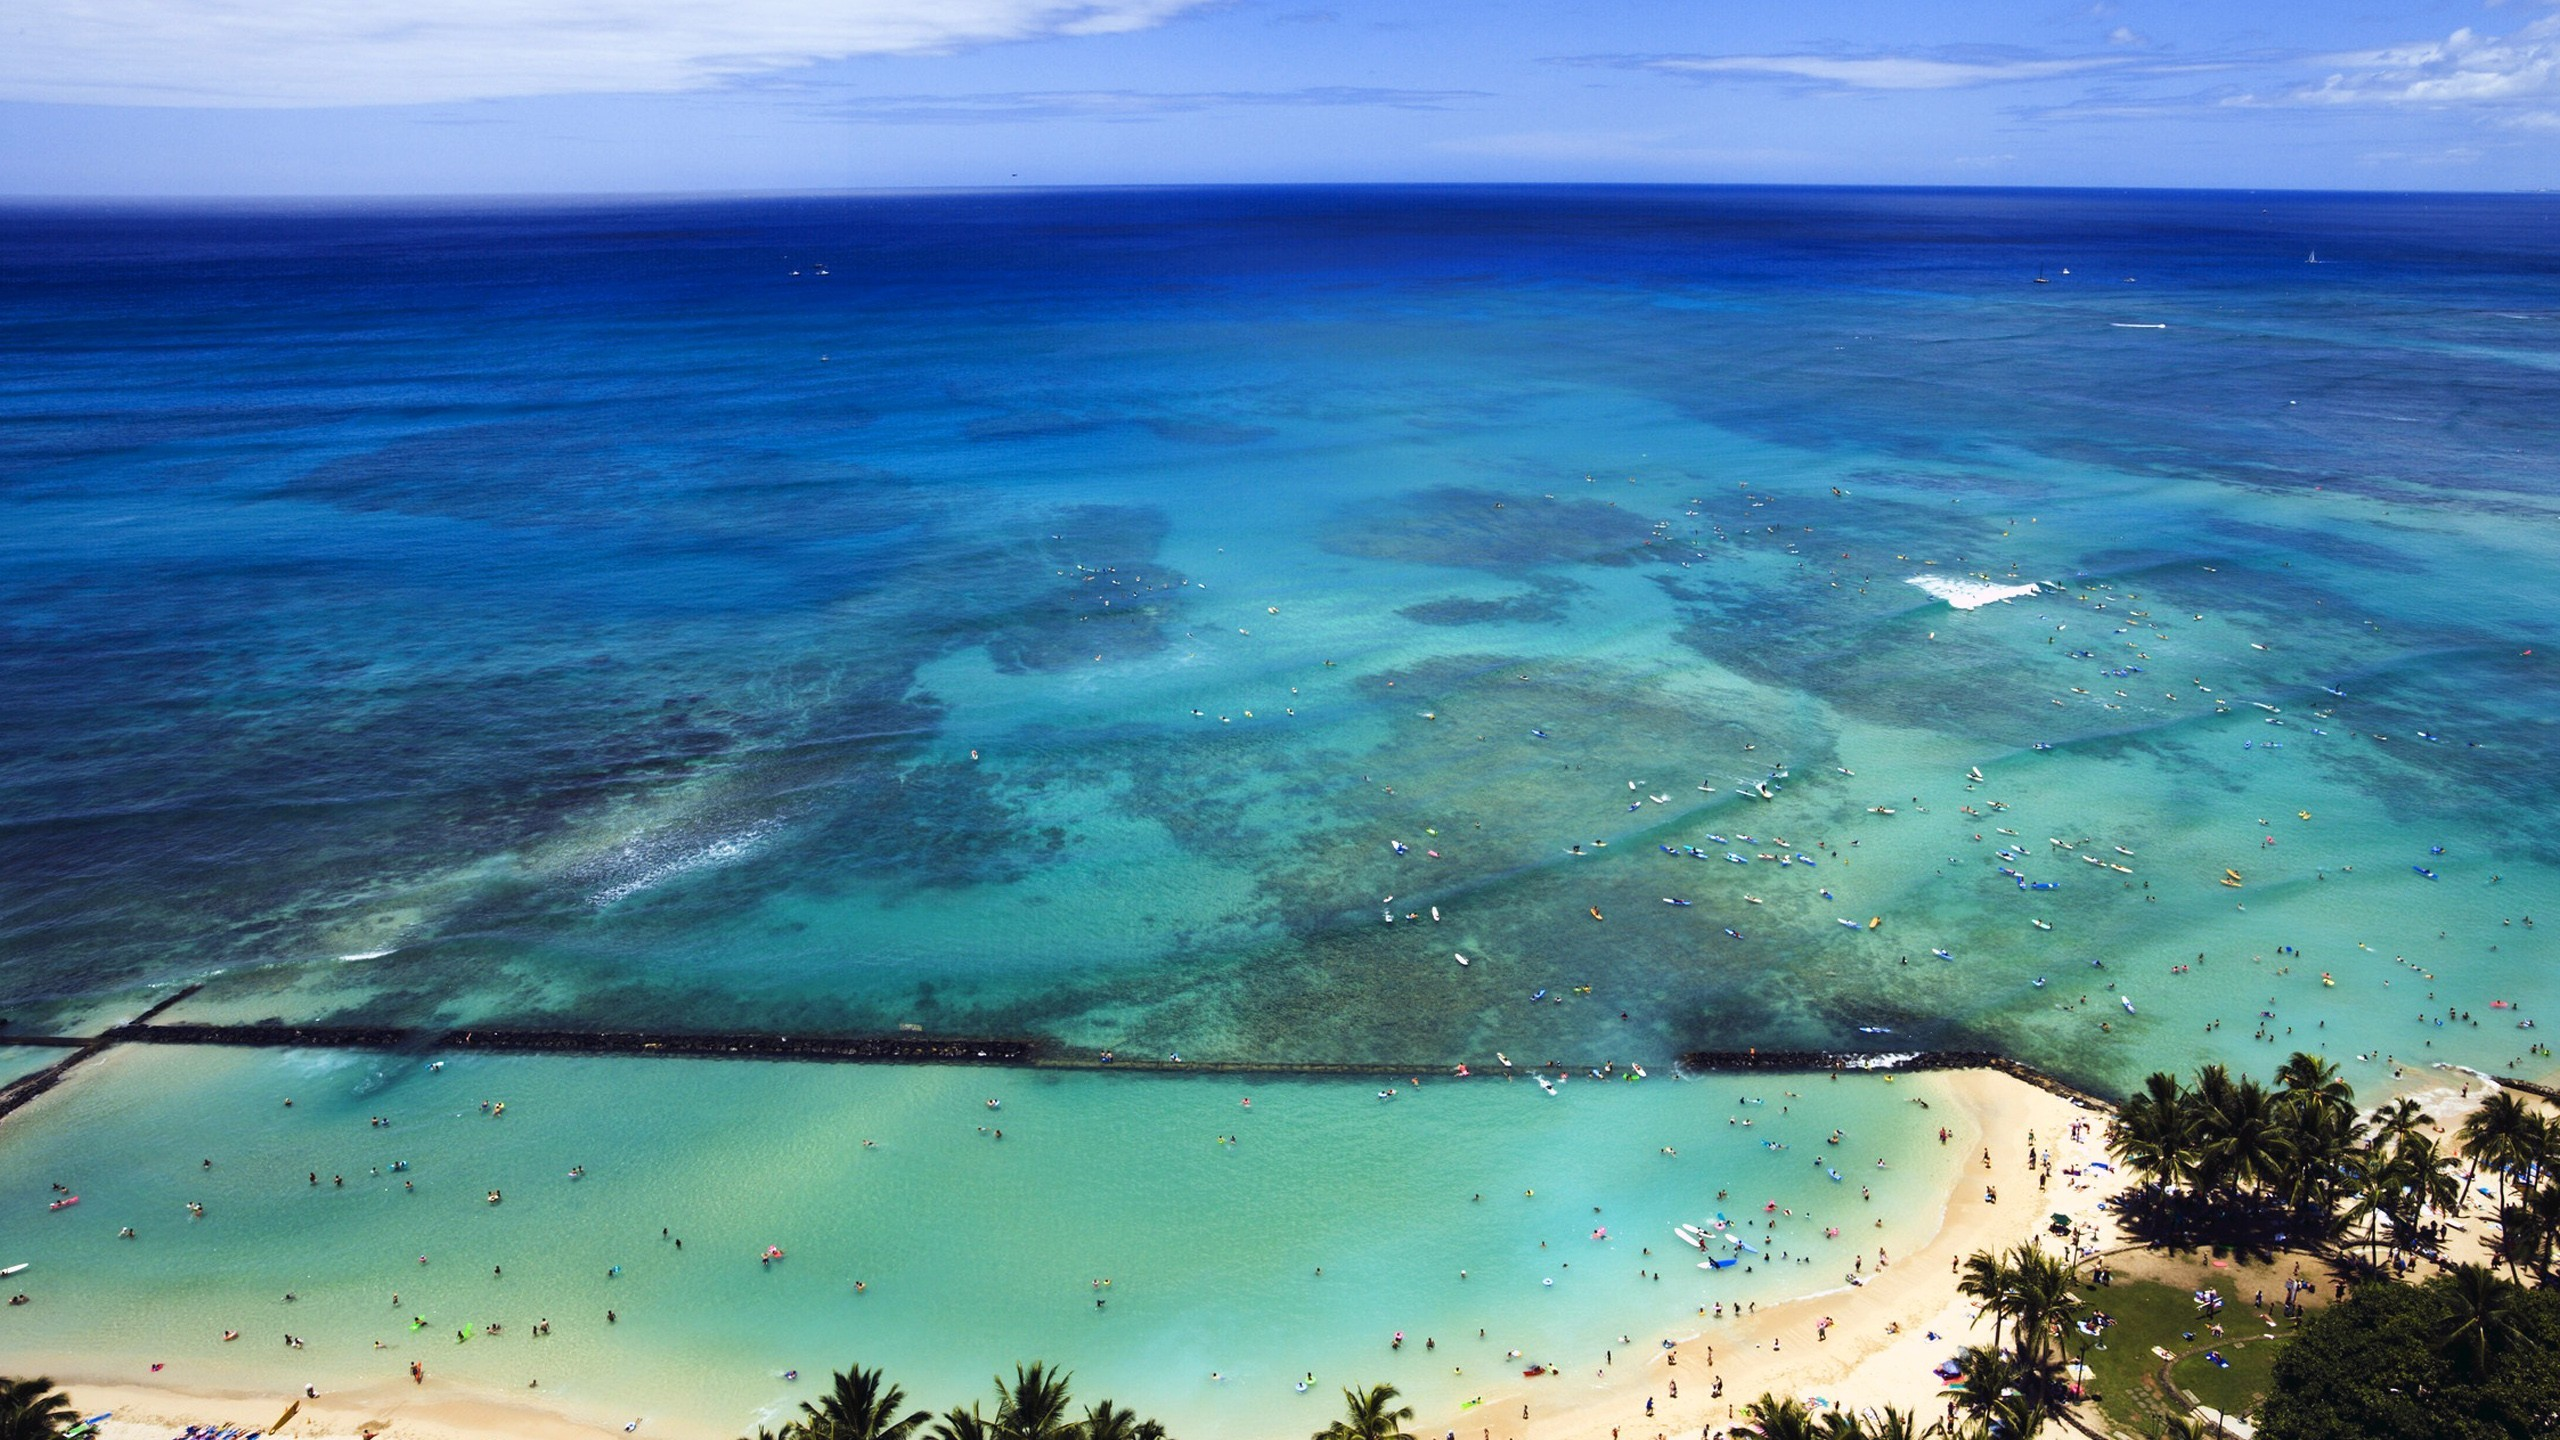 2560x1440 Hawaii Wallpapers, Pictures, Images